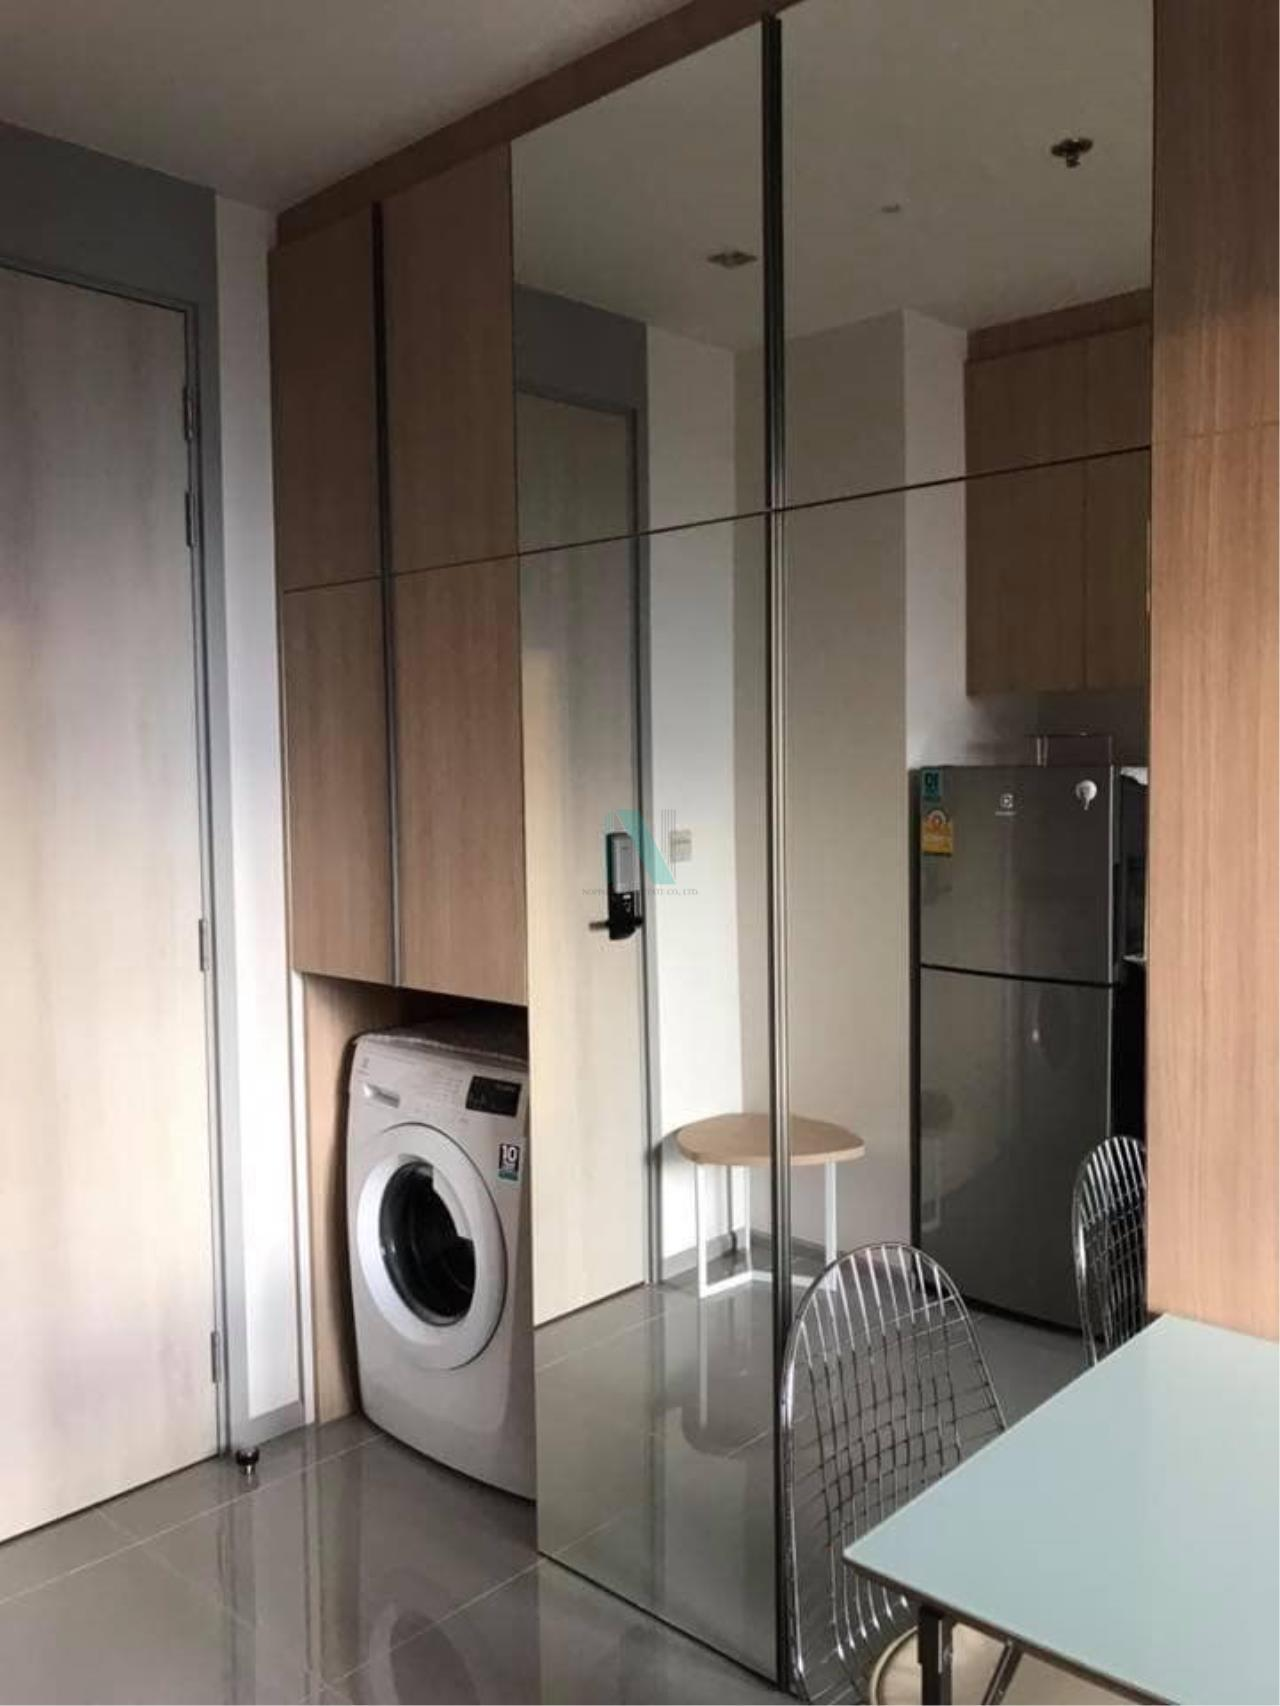 NOPPON REAL ESTATE CO.,LTD.  Agency's M Jatujak Condo for rent, 1 bedroom, 32 sq.m., fully furnished, ready to move in, near BTS Mo chit 7